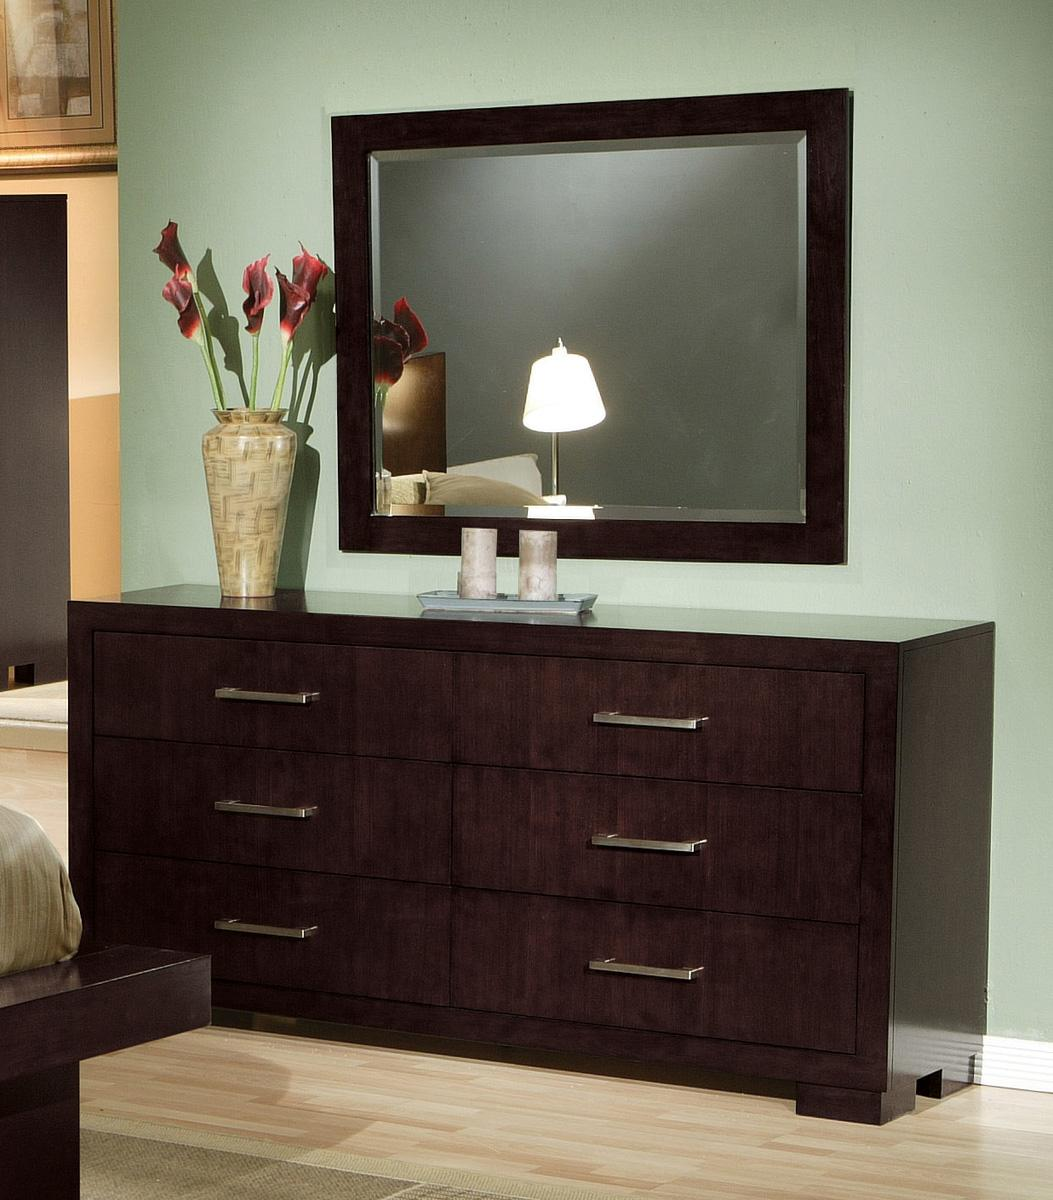 Jessica modern platform cappuccino finish bedroom set free shipping - Jessica bedroom set ...